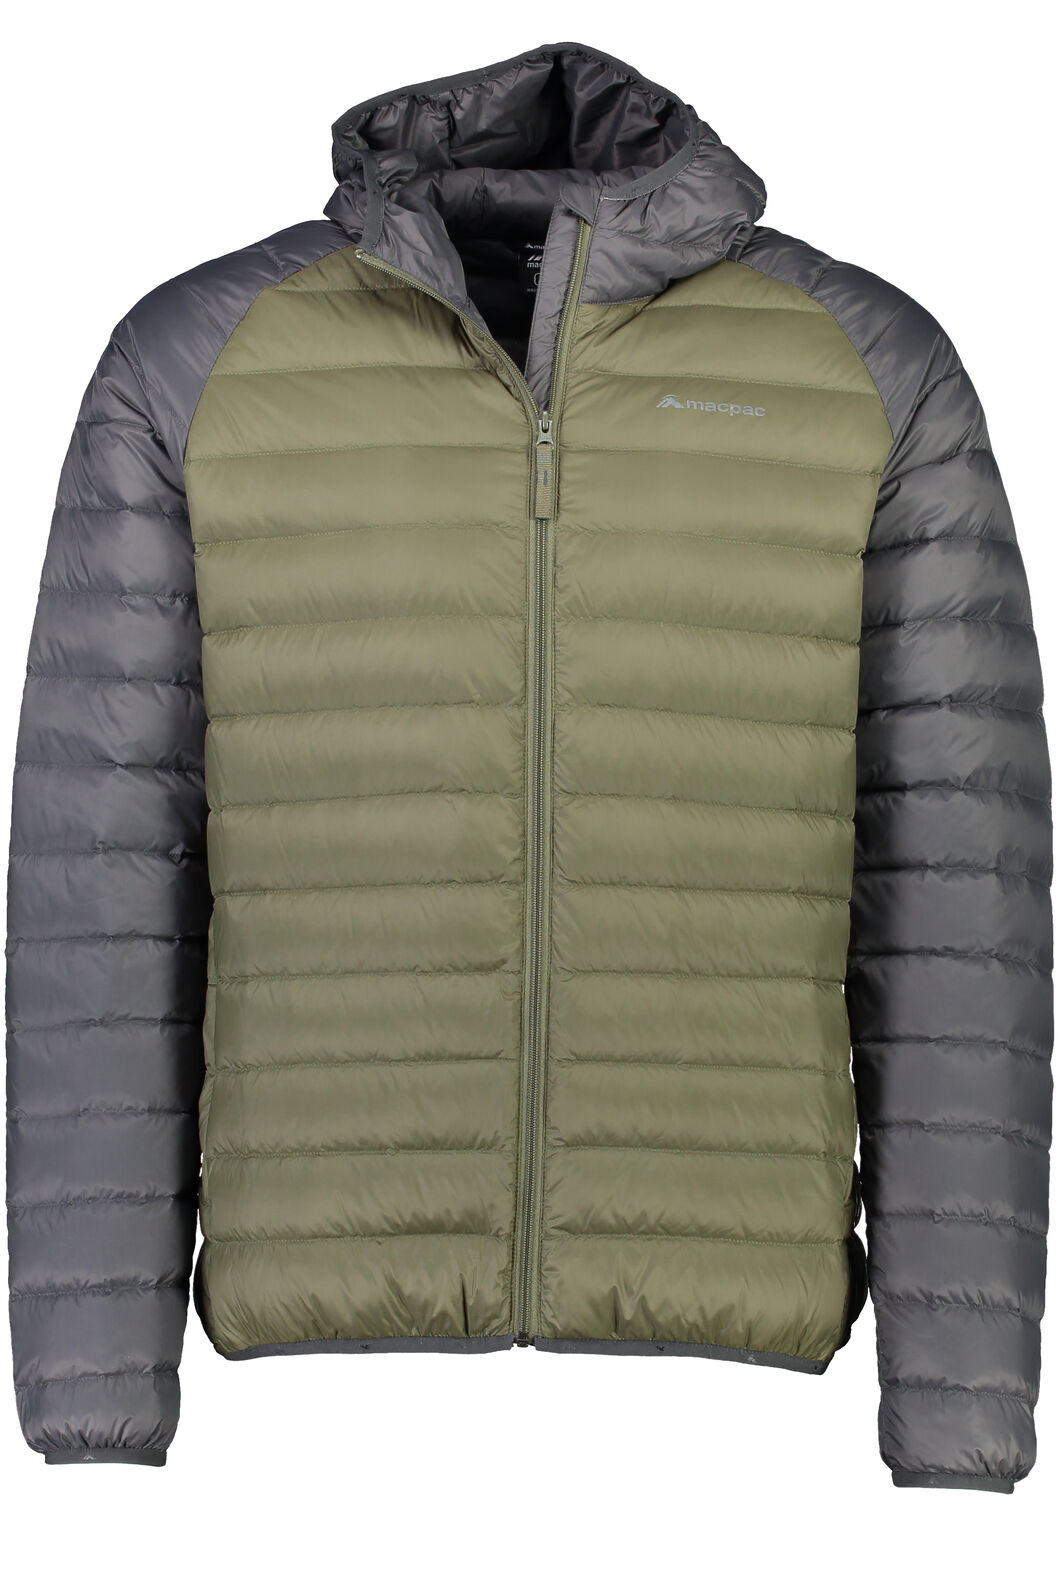 Macpac Uber Hooded Down Jacket - Men's, Grape Leaf/Asphalt, hi-res